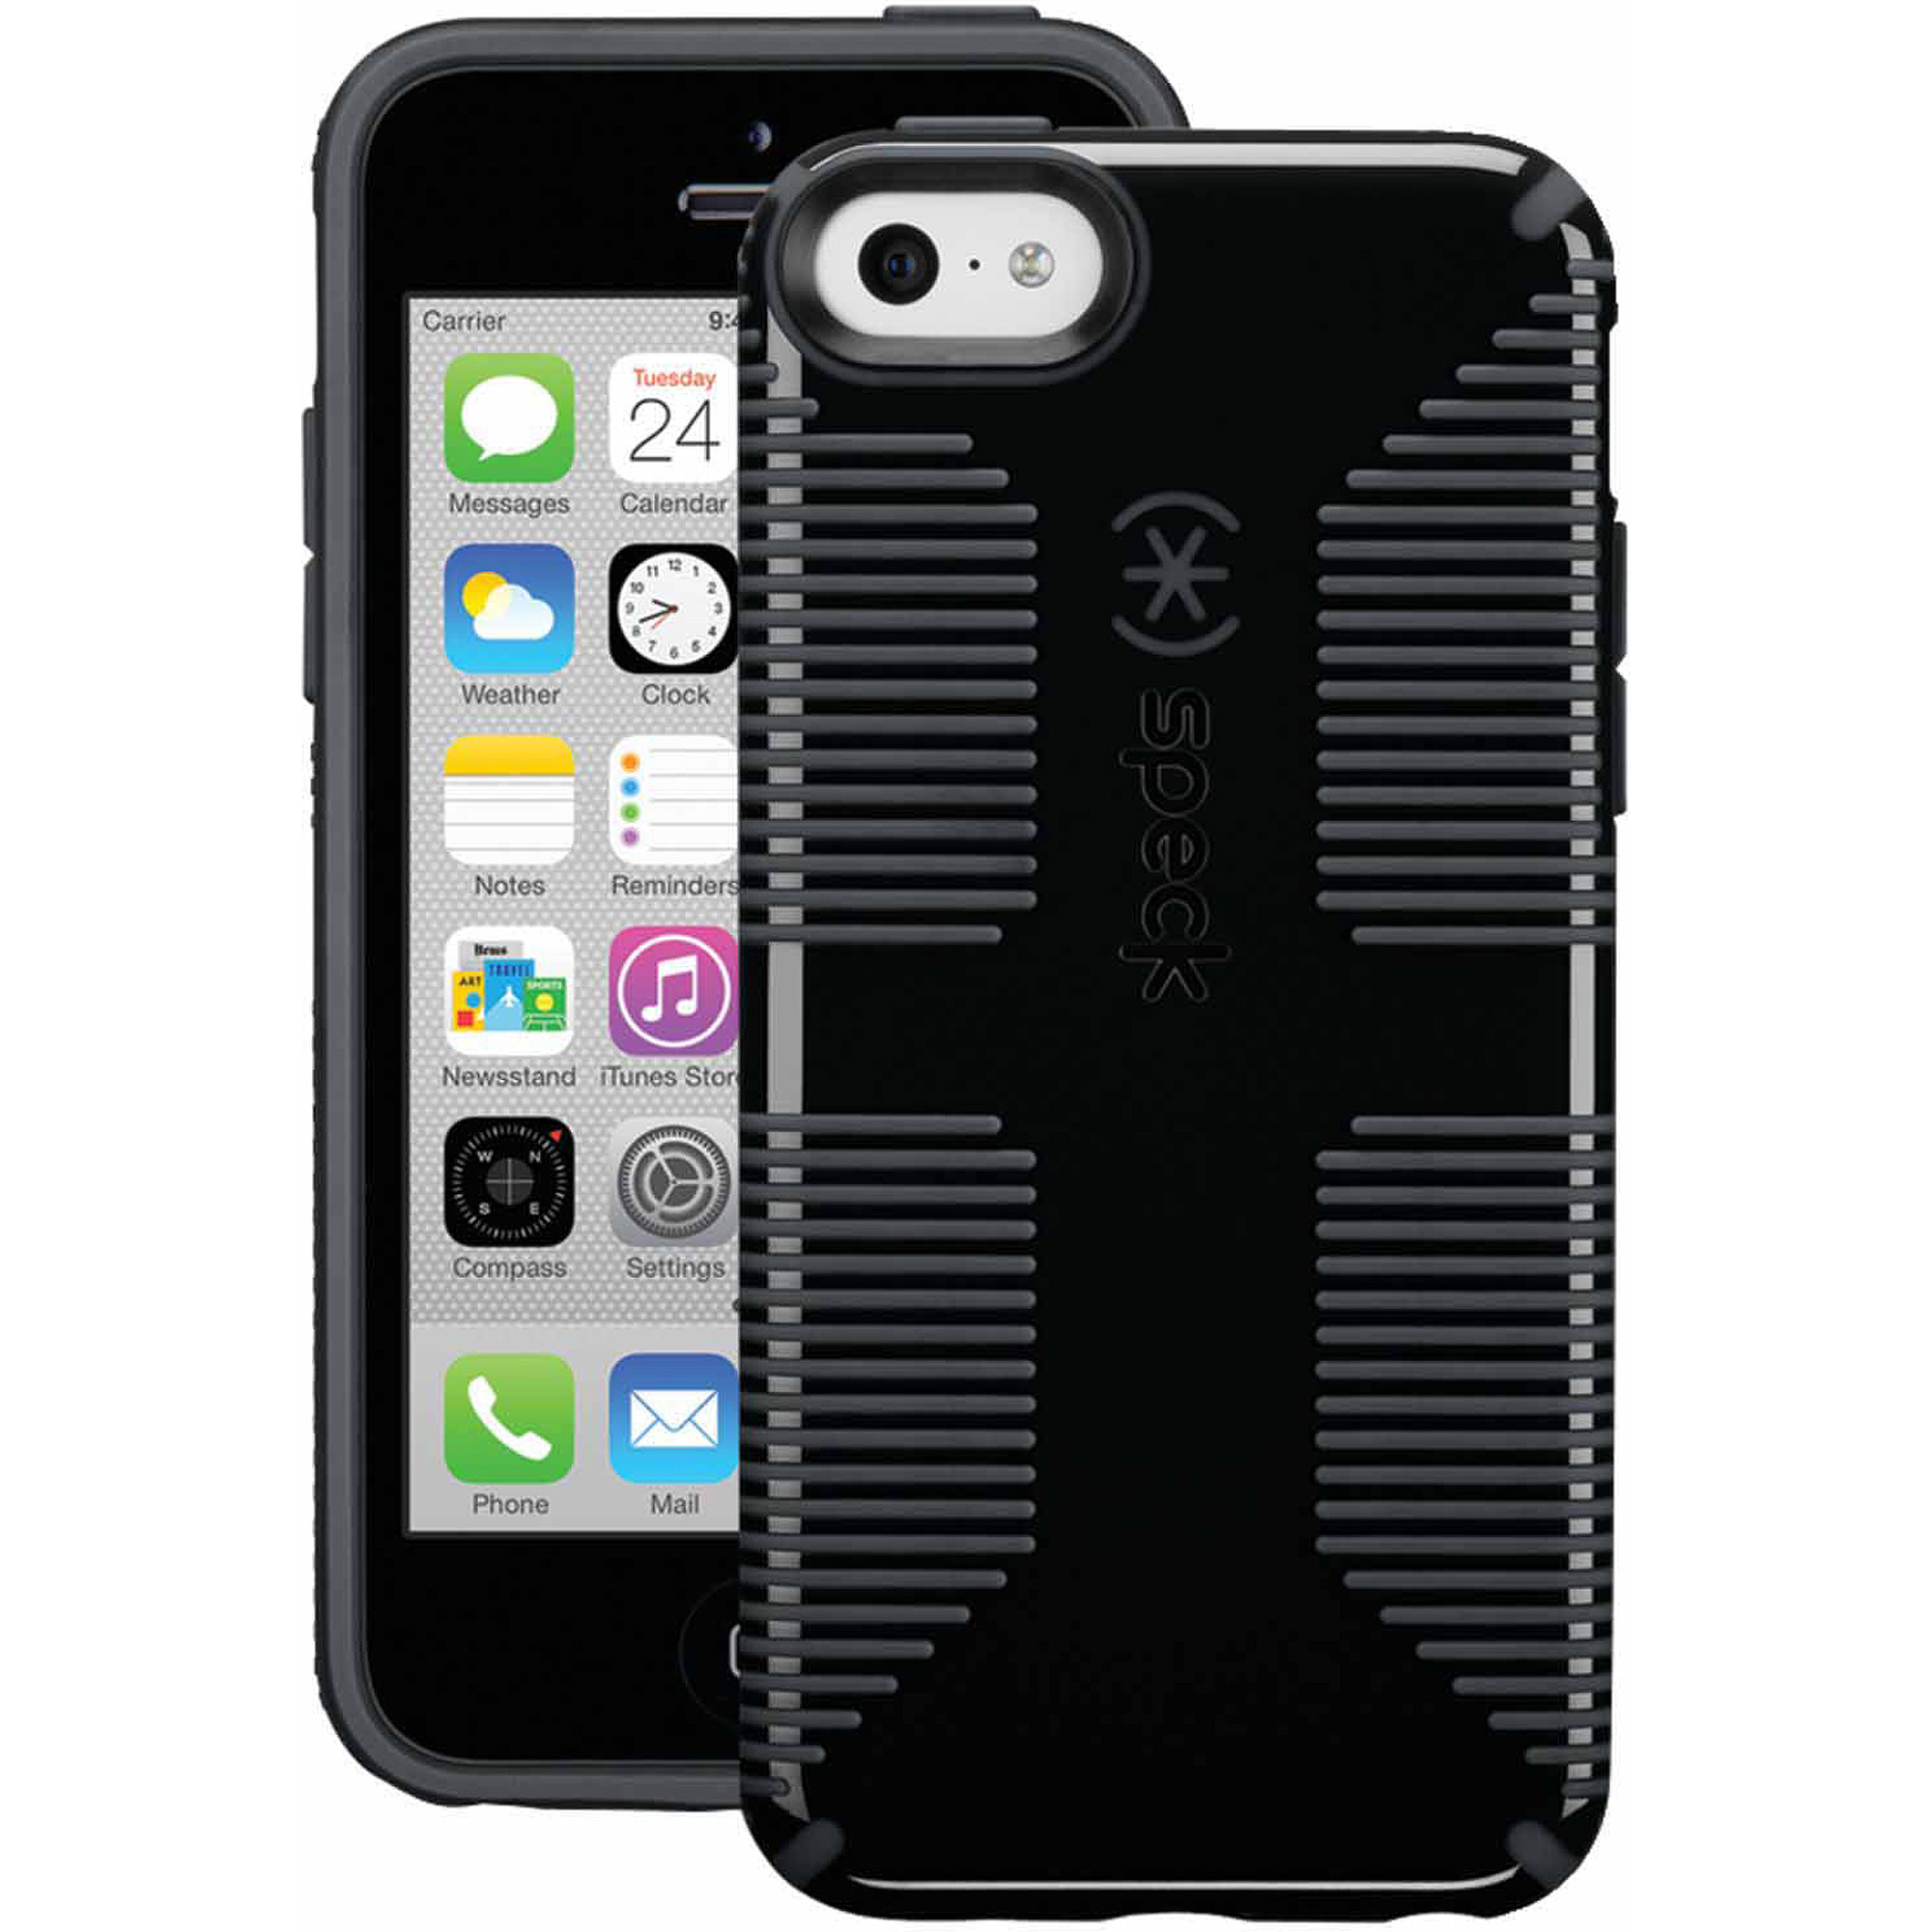 iphone 5c speck case speck apple iphone 5c candyshell grip walmart 14704